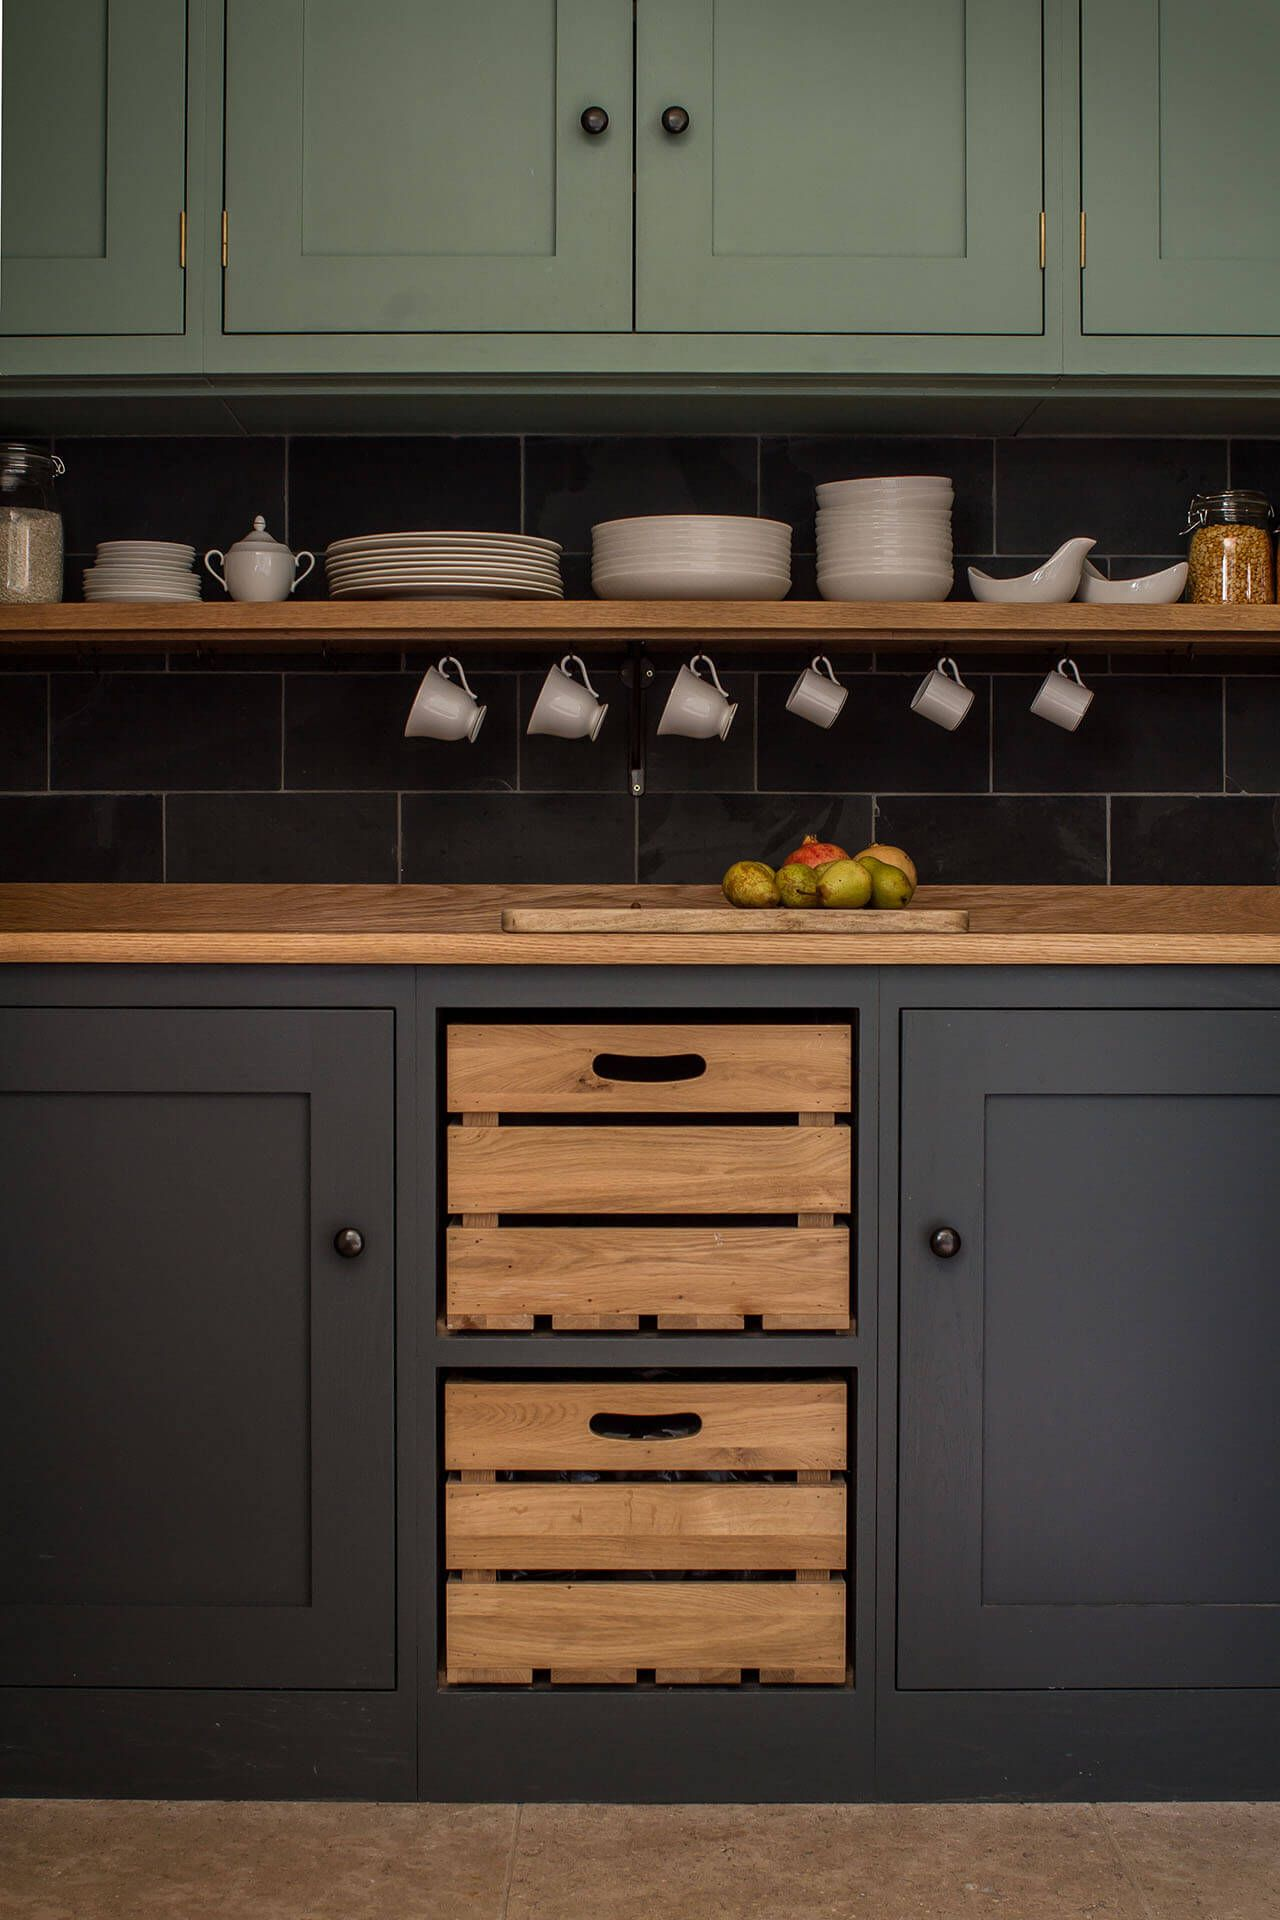 Cotswold Chapel Kitchen Sustainable Kitchens Kitchen Cabinet Design Sustainable Kitchen Kitchen Design